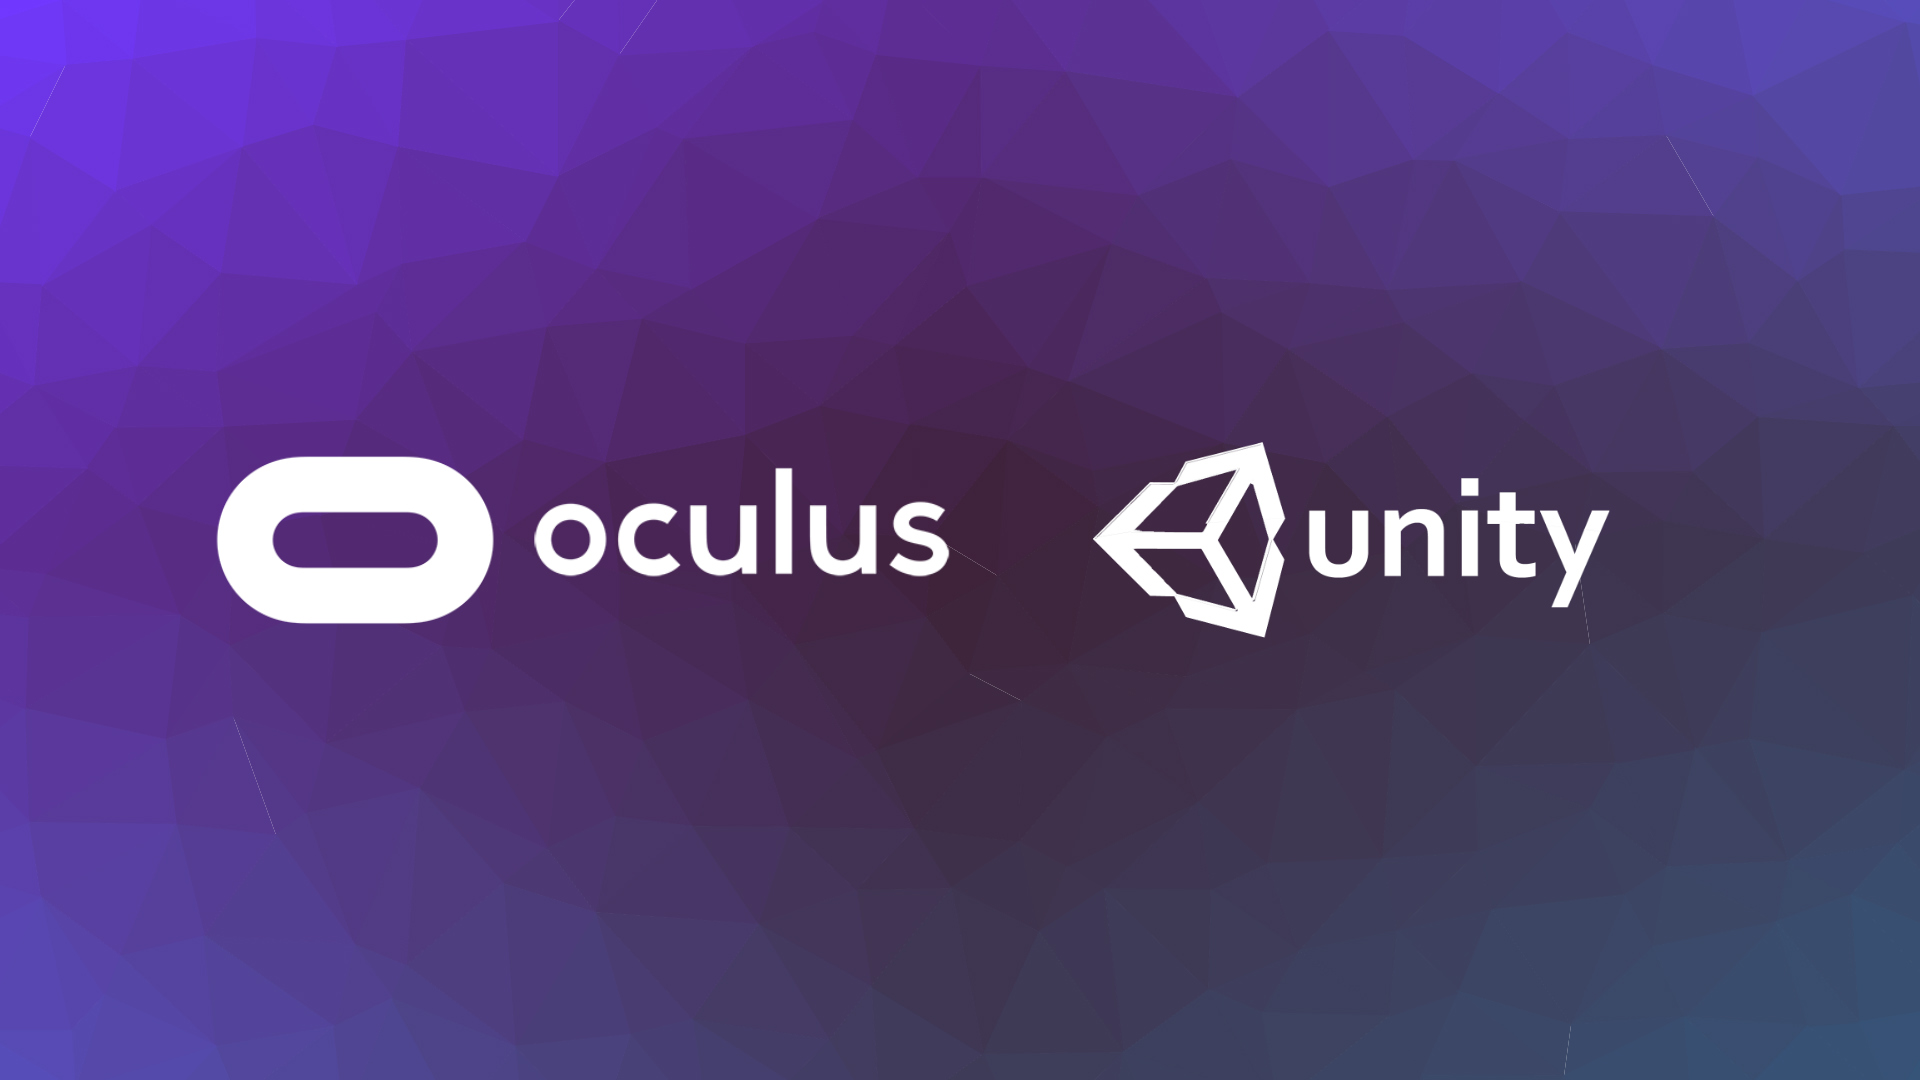 Oculus & Unity Release Free VR Development Course with 20 Hours of Content